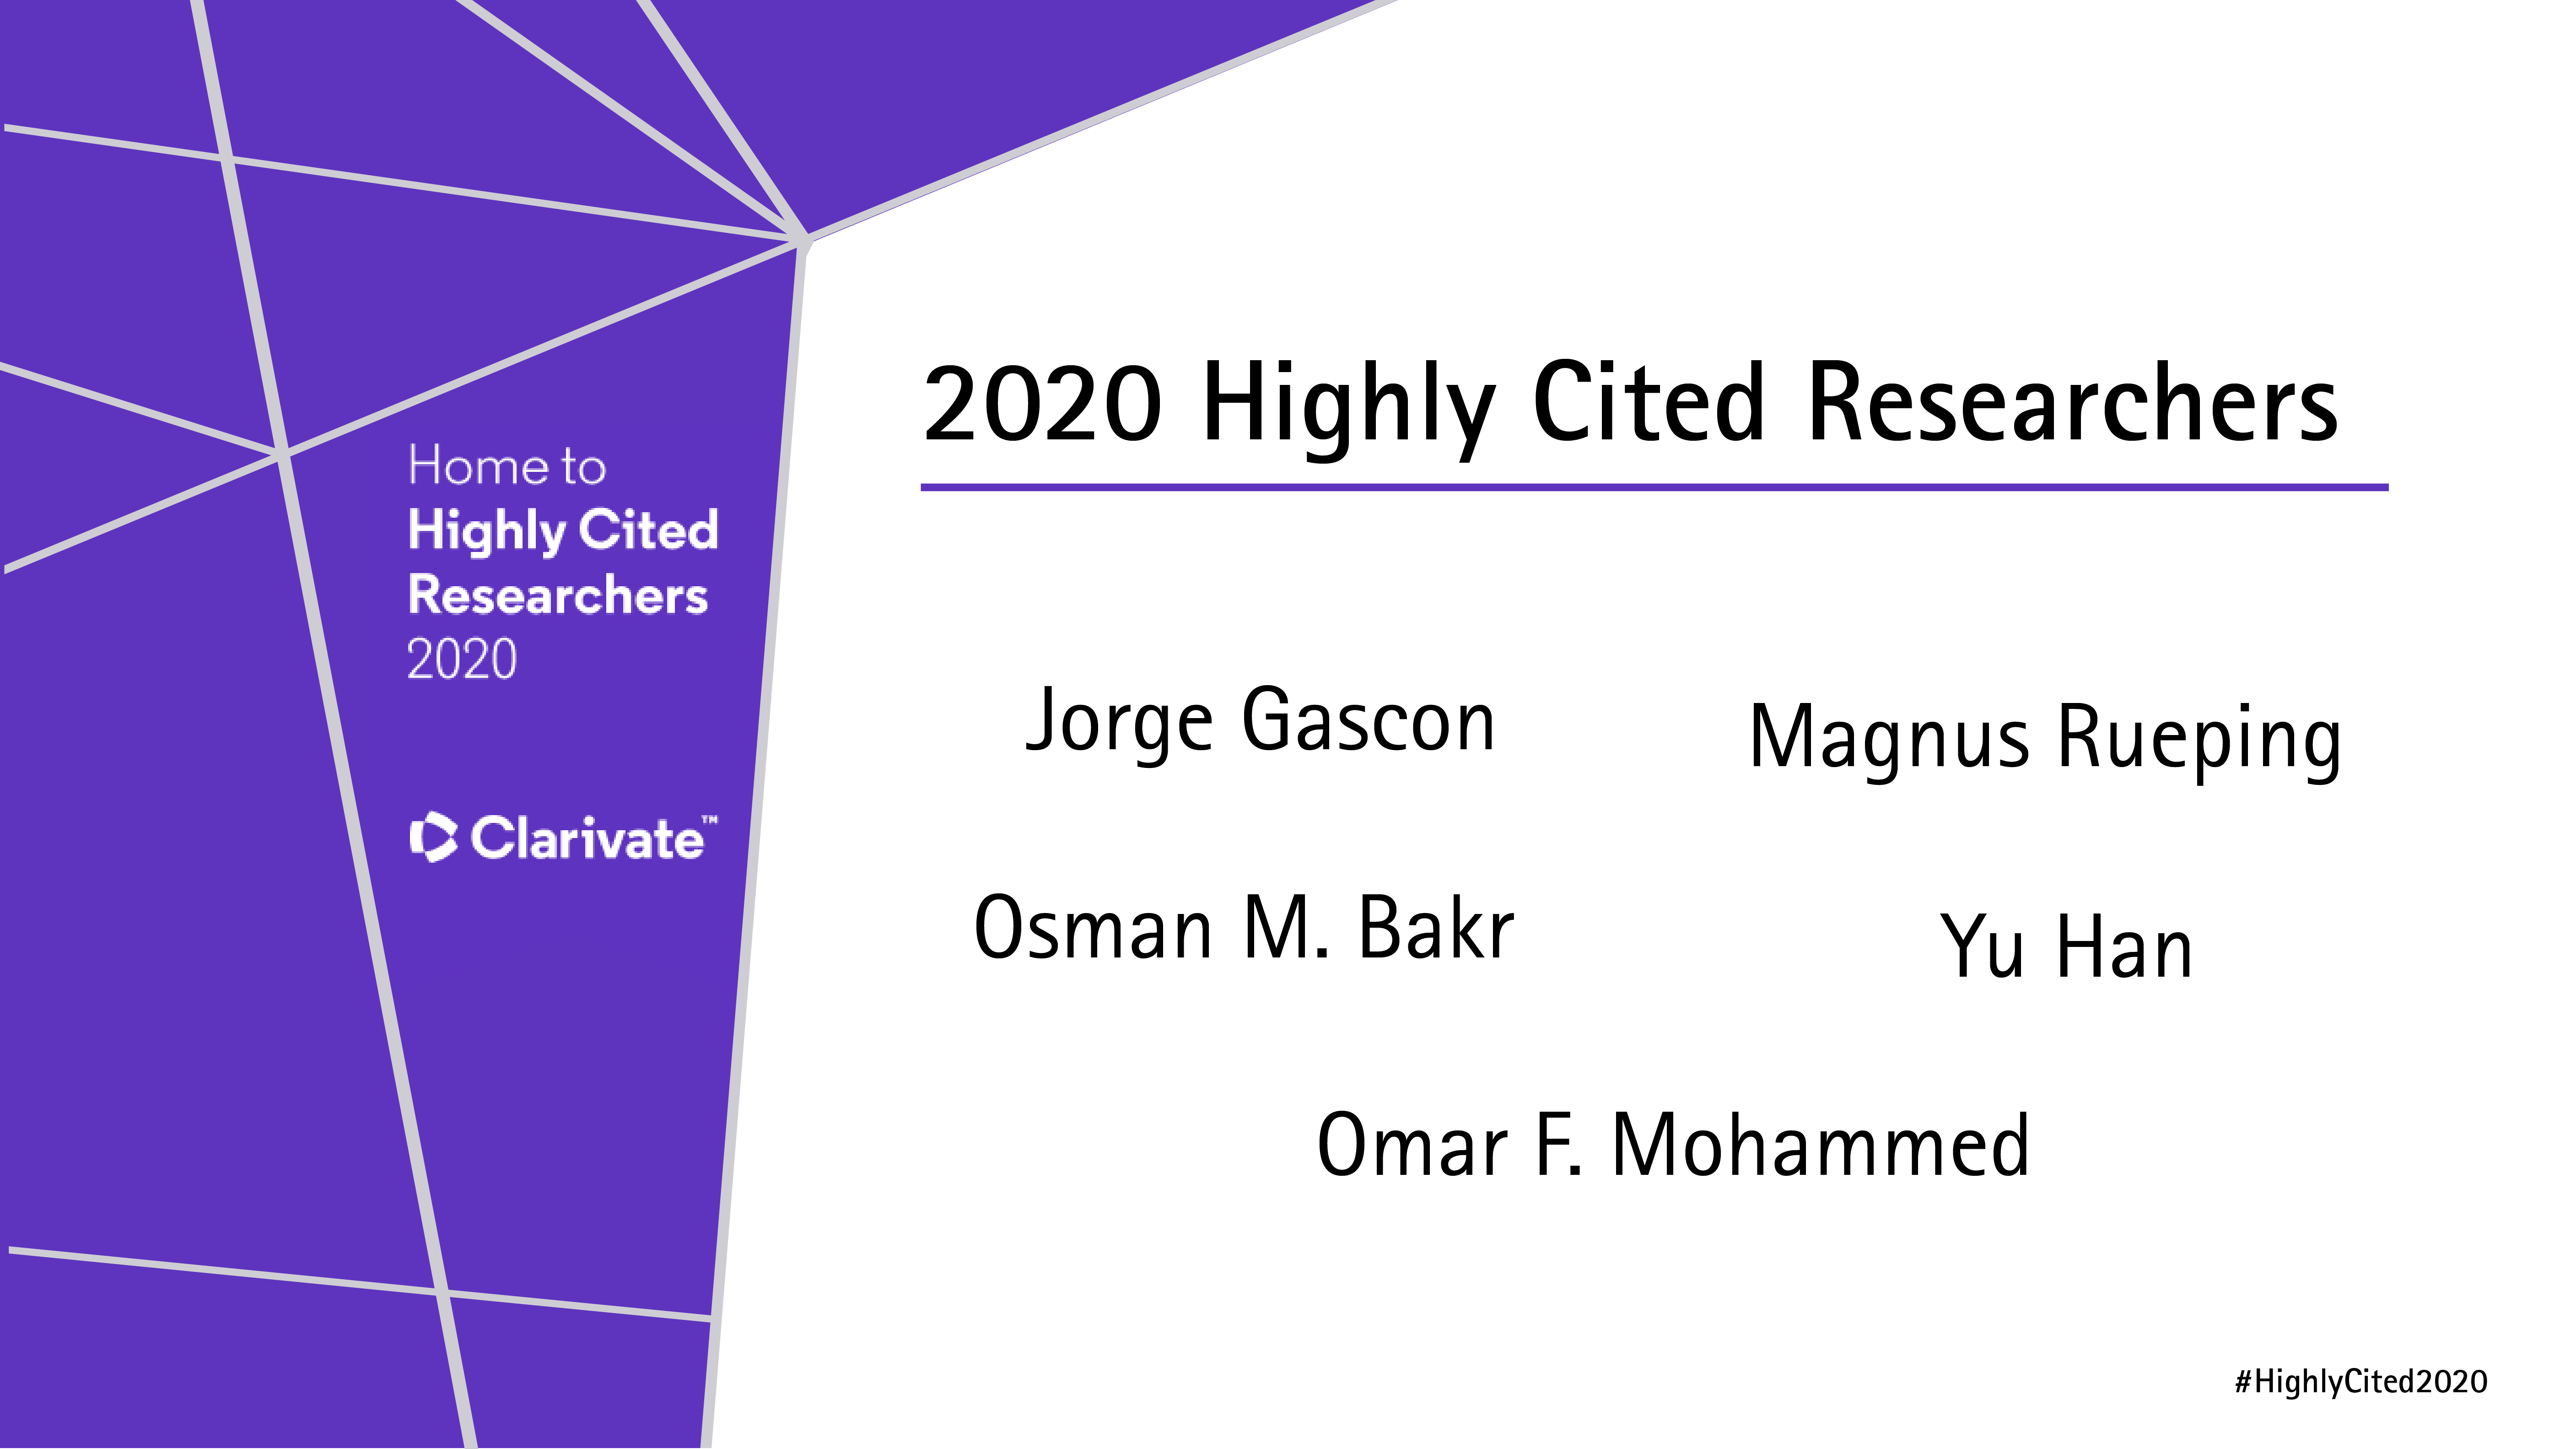 Highly Cited Research 2020